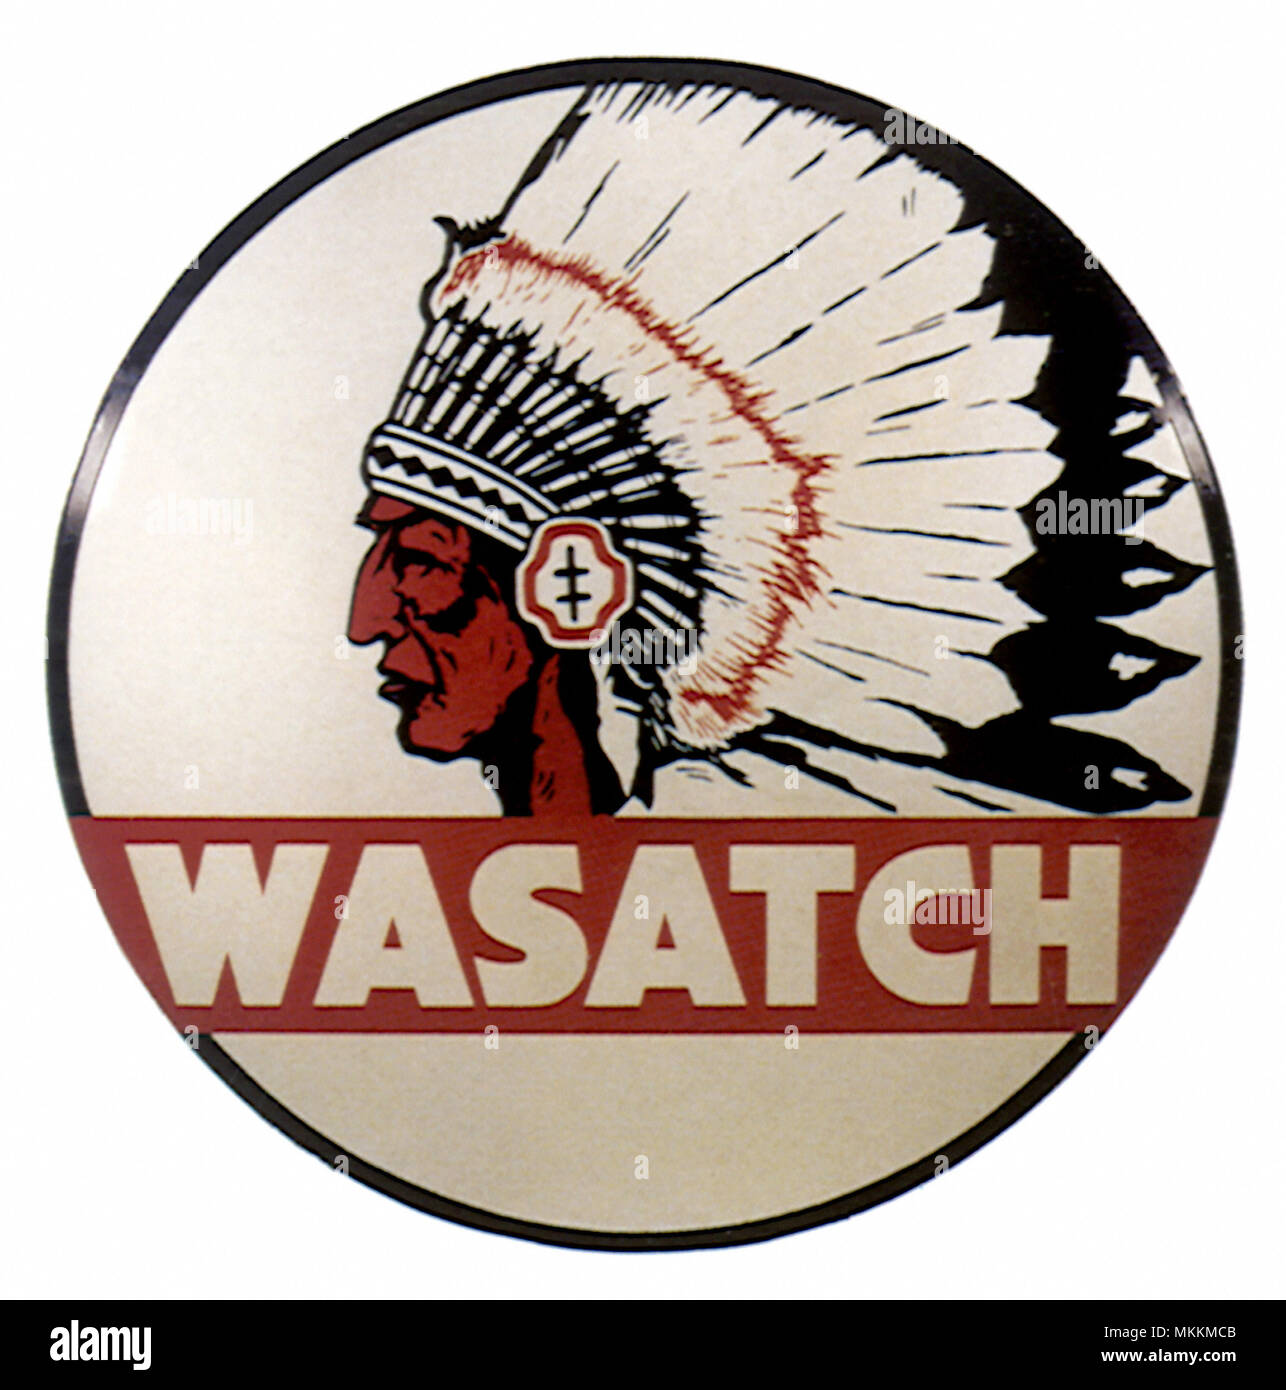 Wasatch Sign - Stock Image